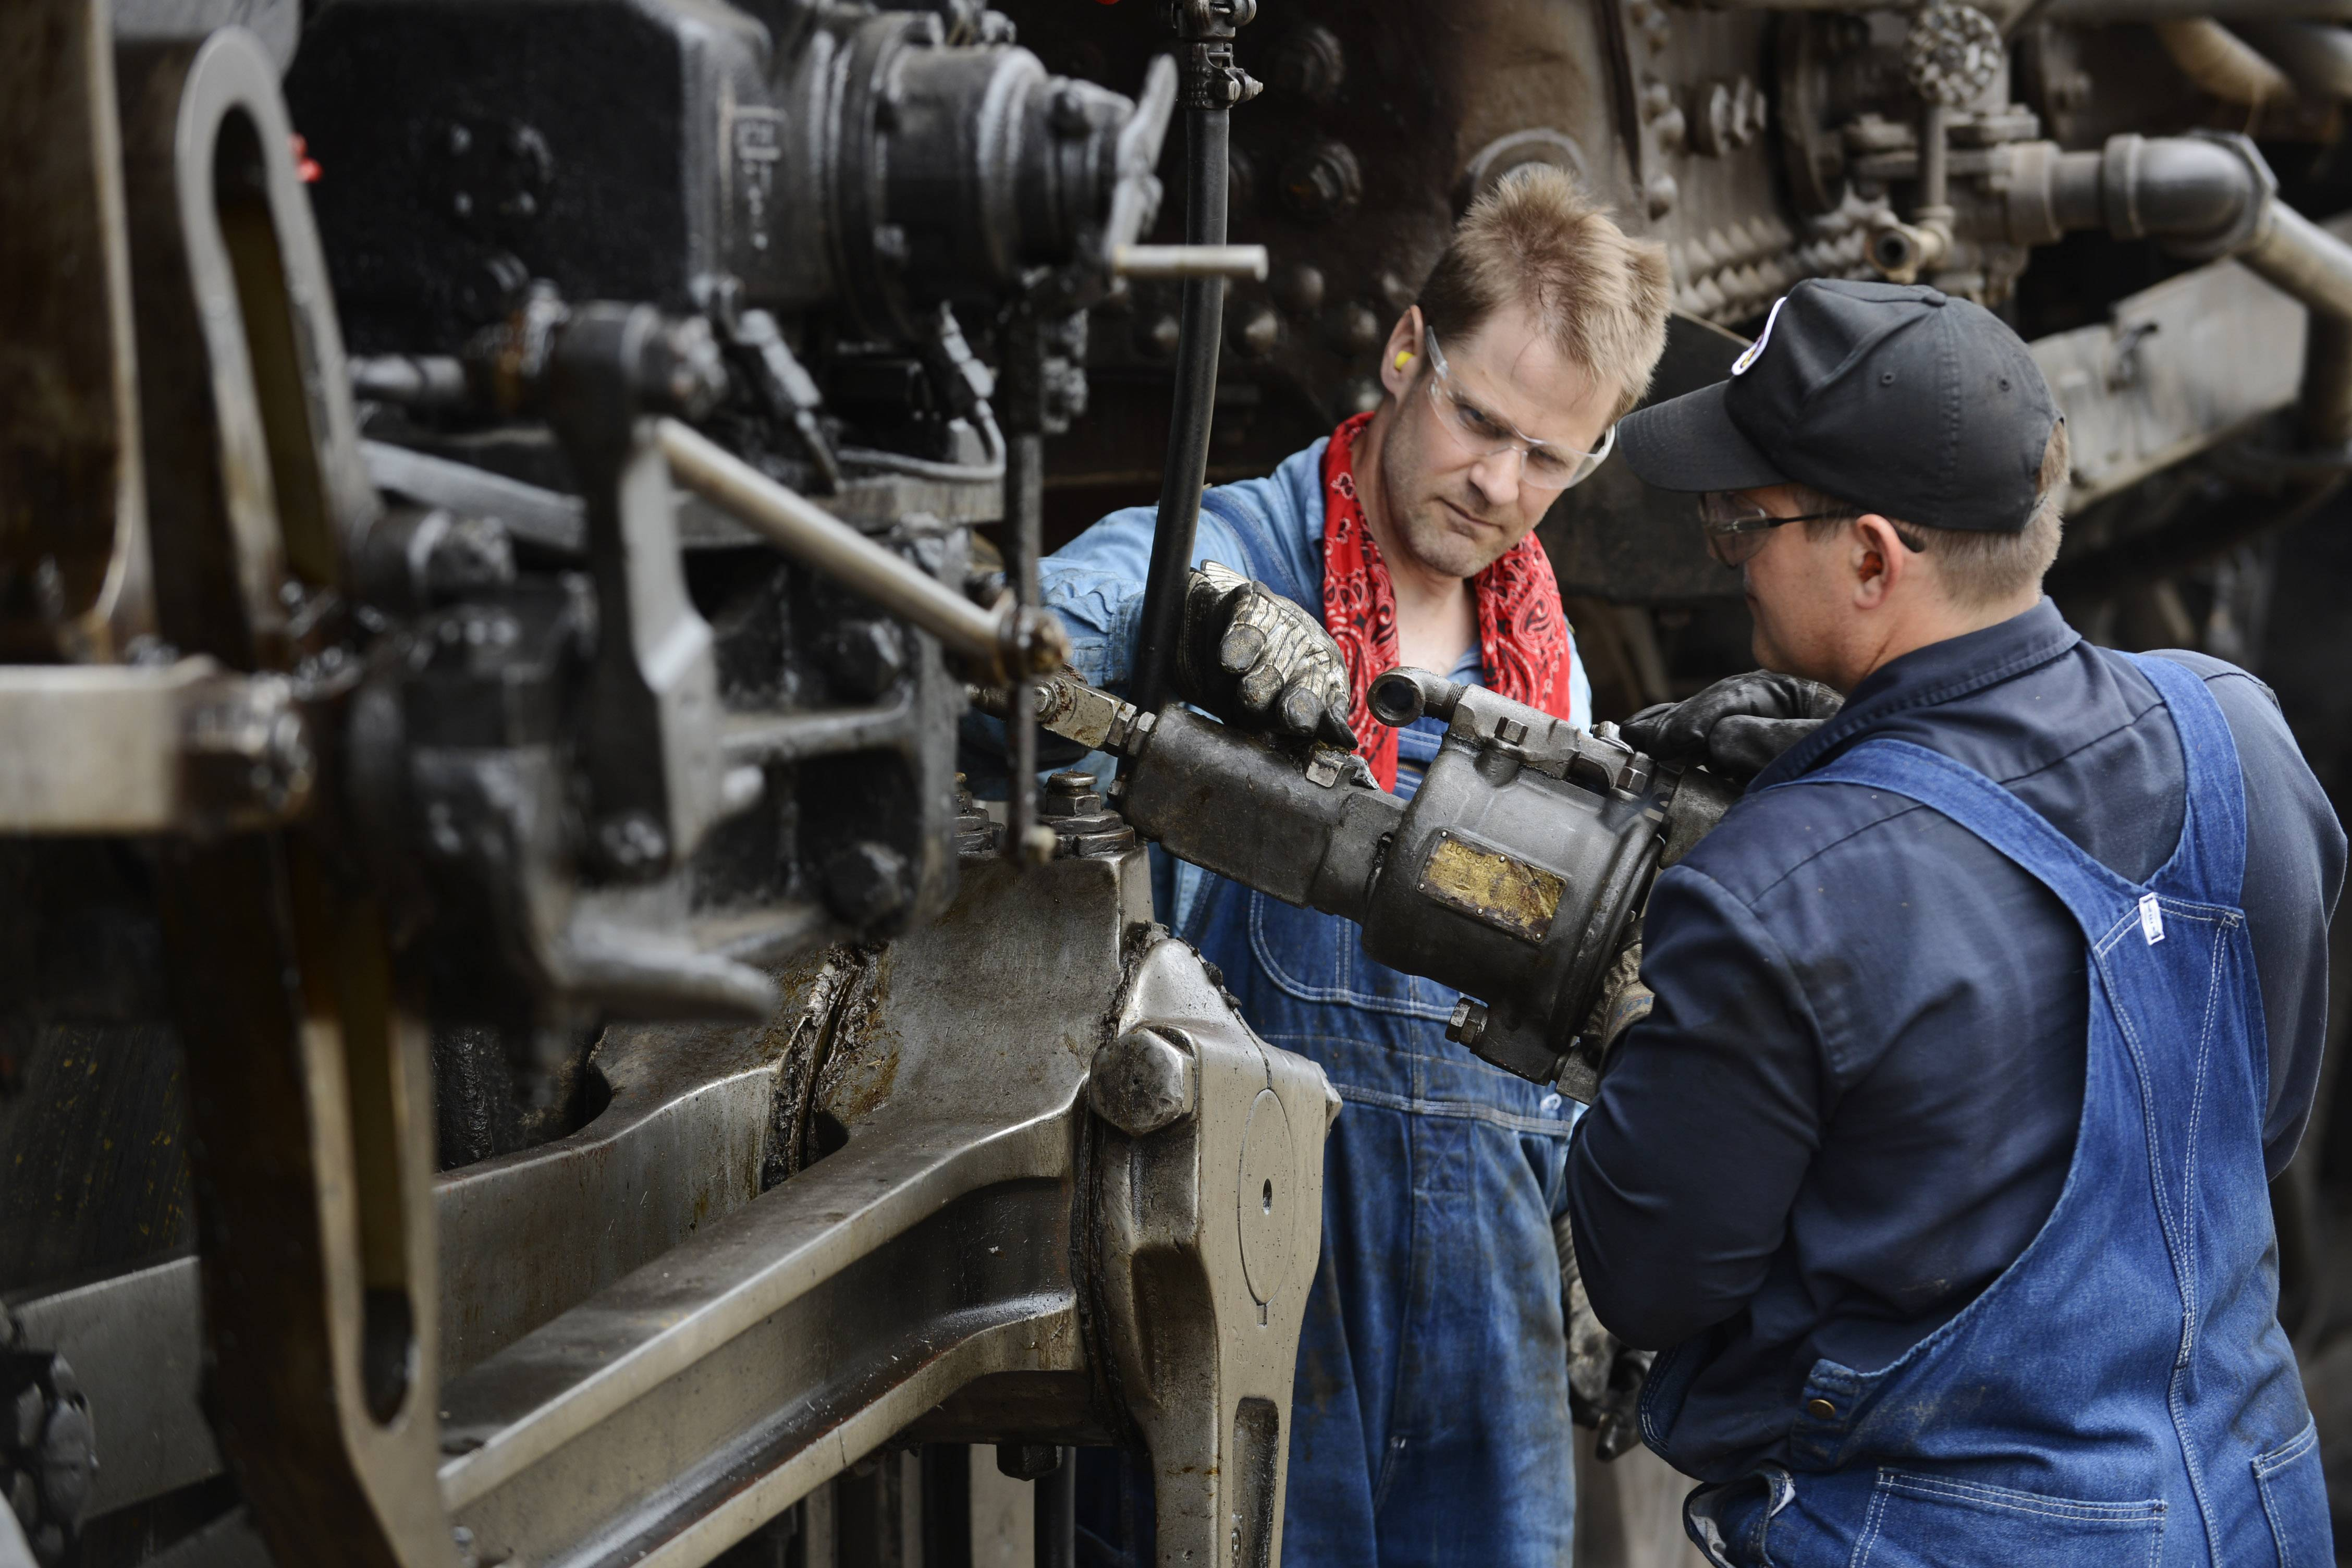 Student fireman Eric Wahlmark, left, of Aurora checks grease fittings with Maxwell on Frisco 1630 at the Illinois Railway Museum in Union.